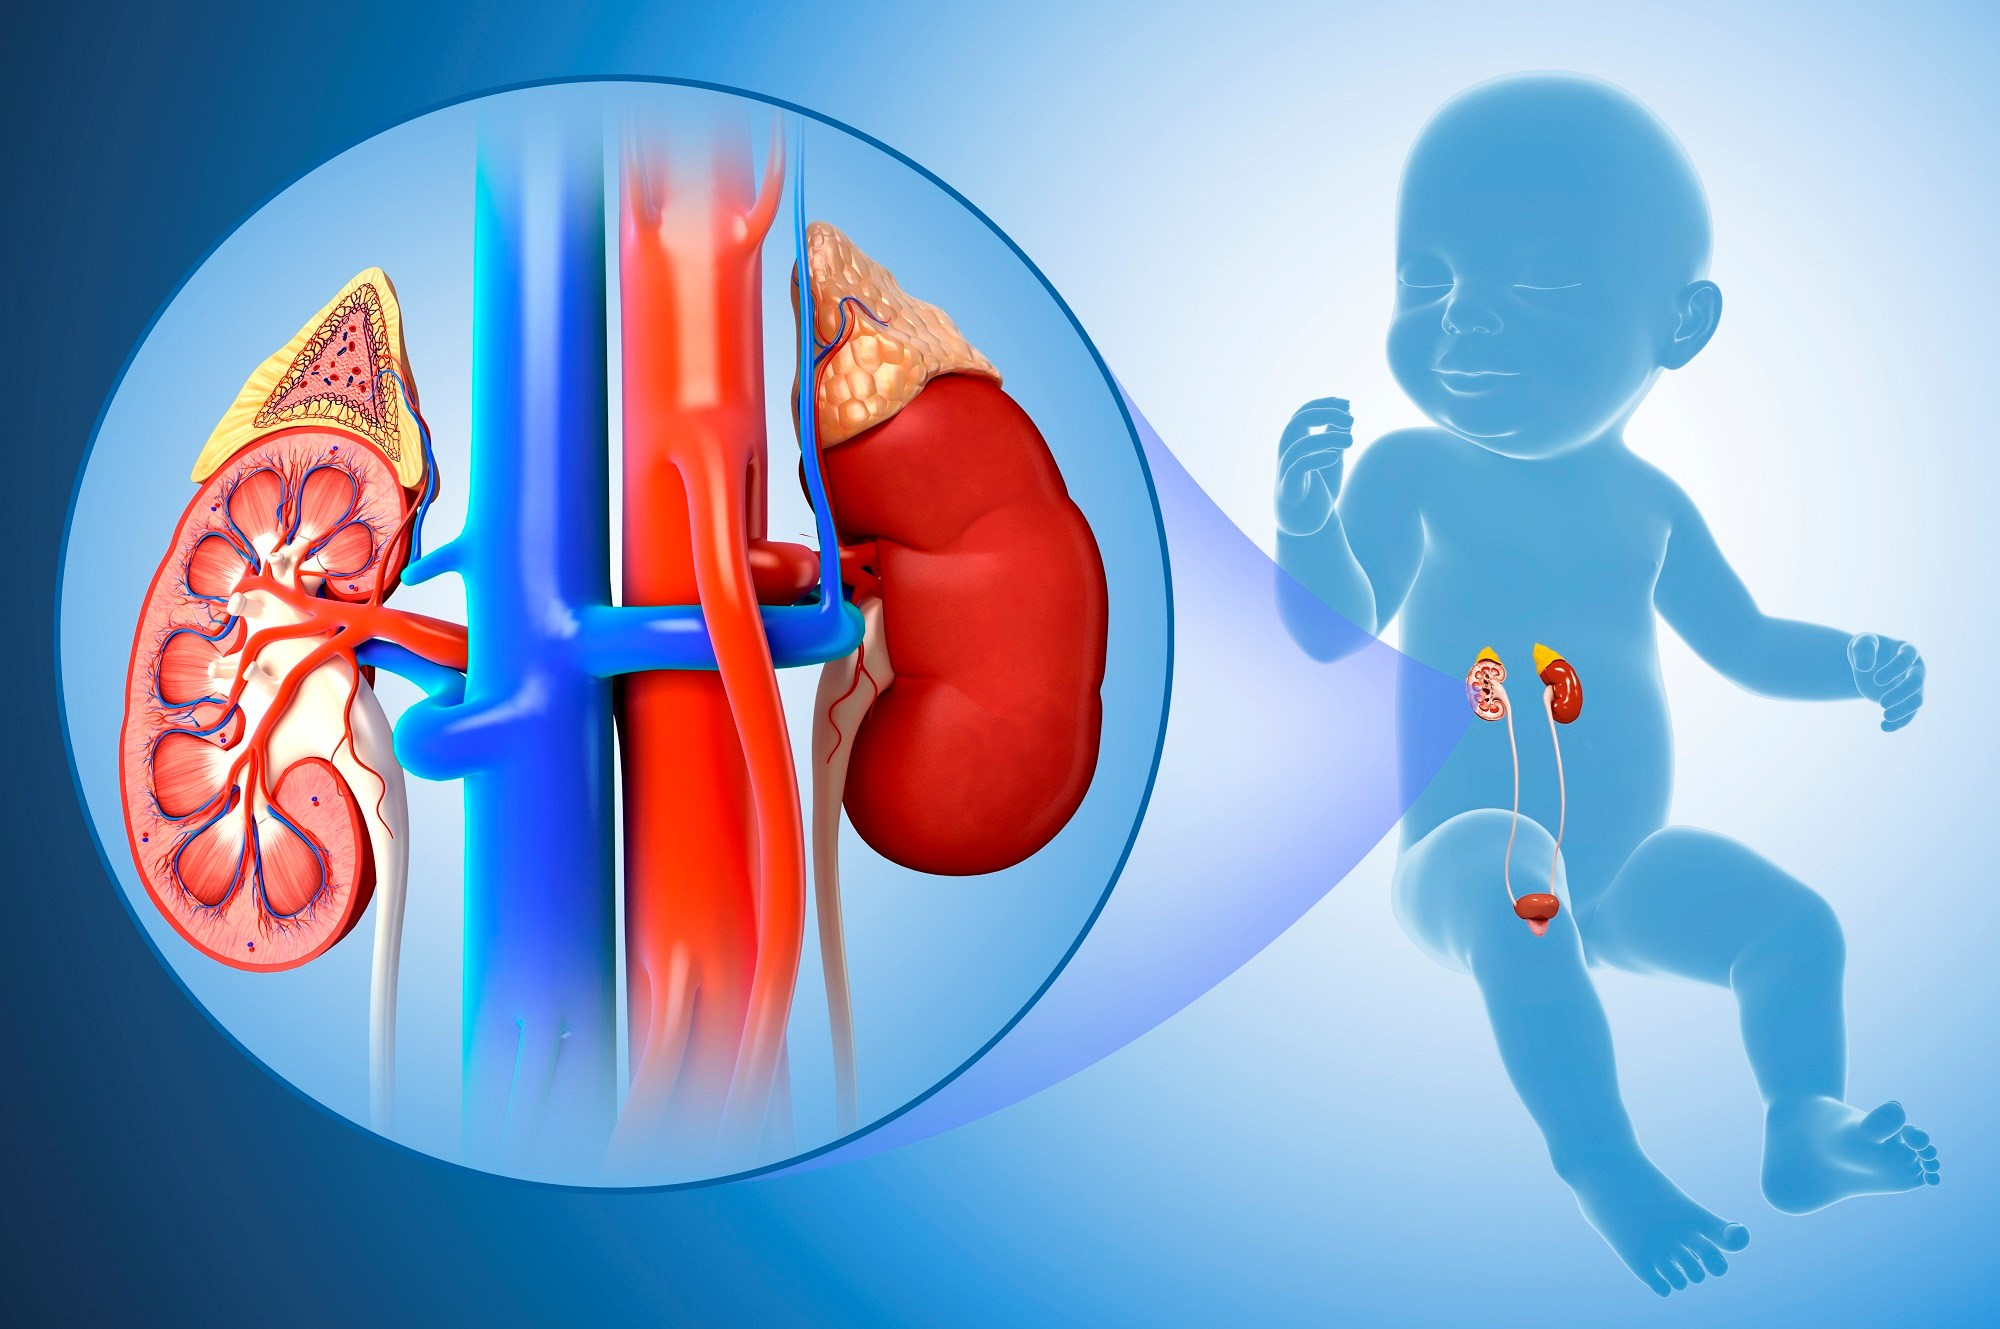 Enlarged Kidneys Noted in Neonates With Congenital Heart Disease